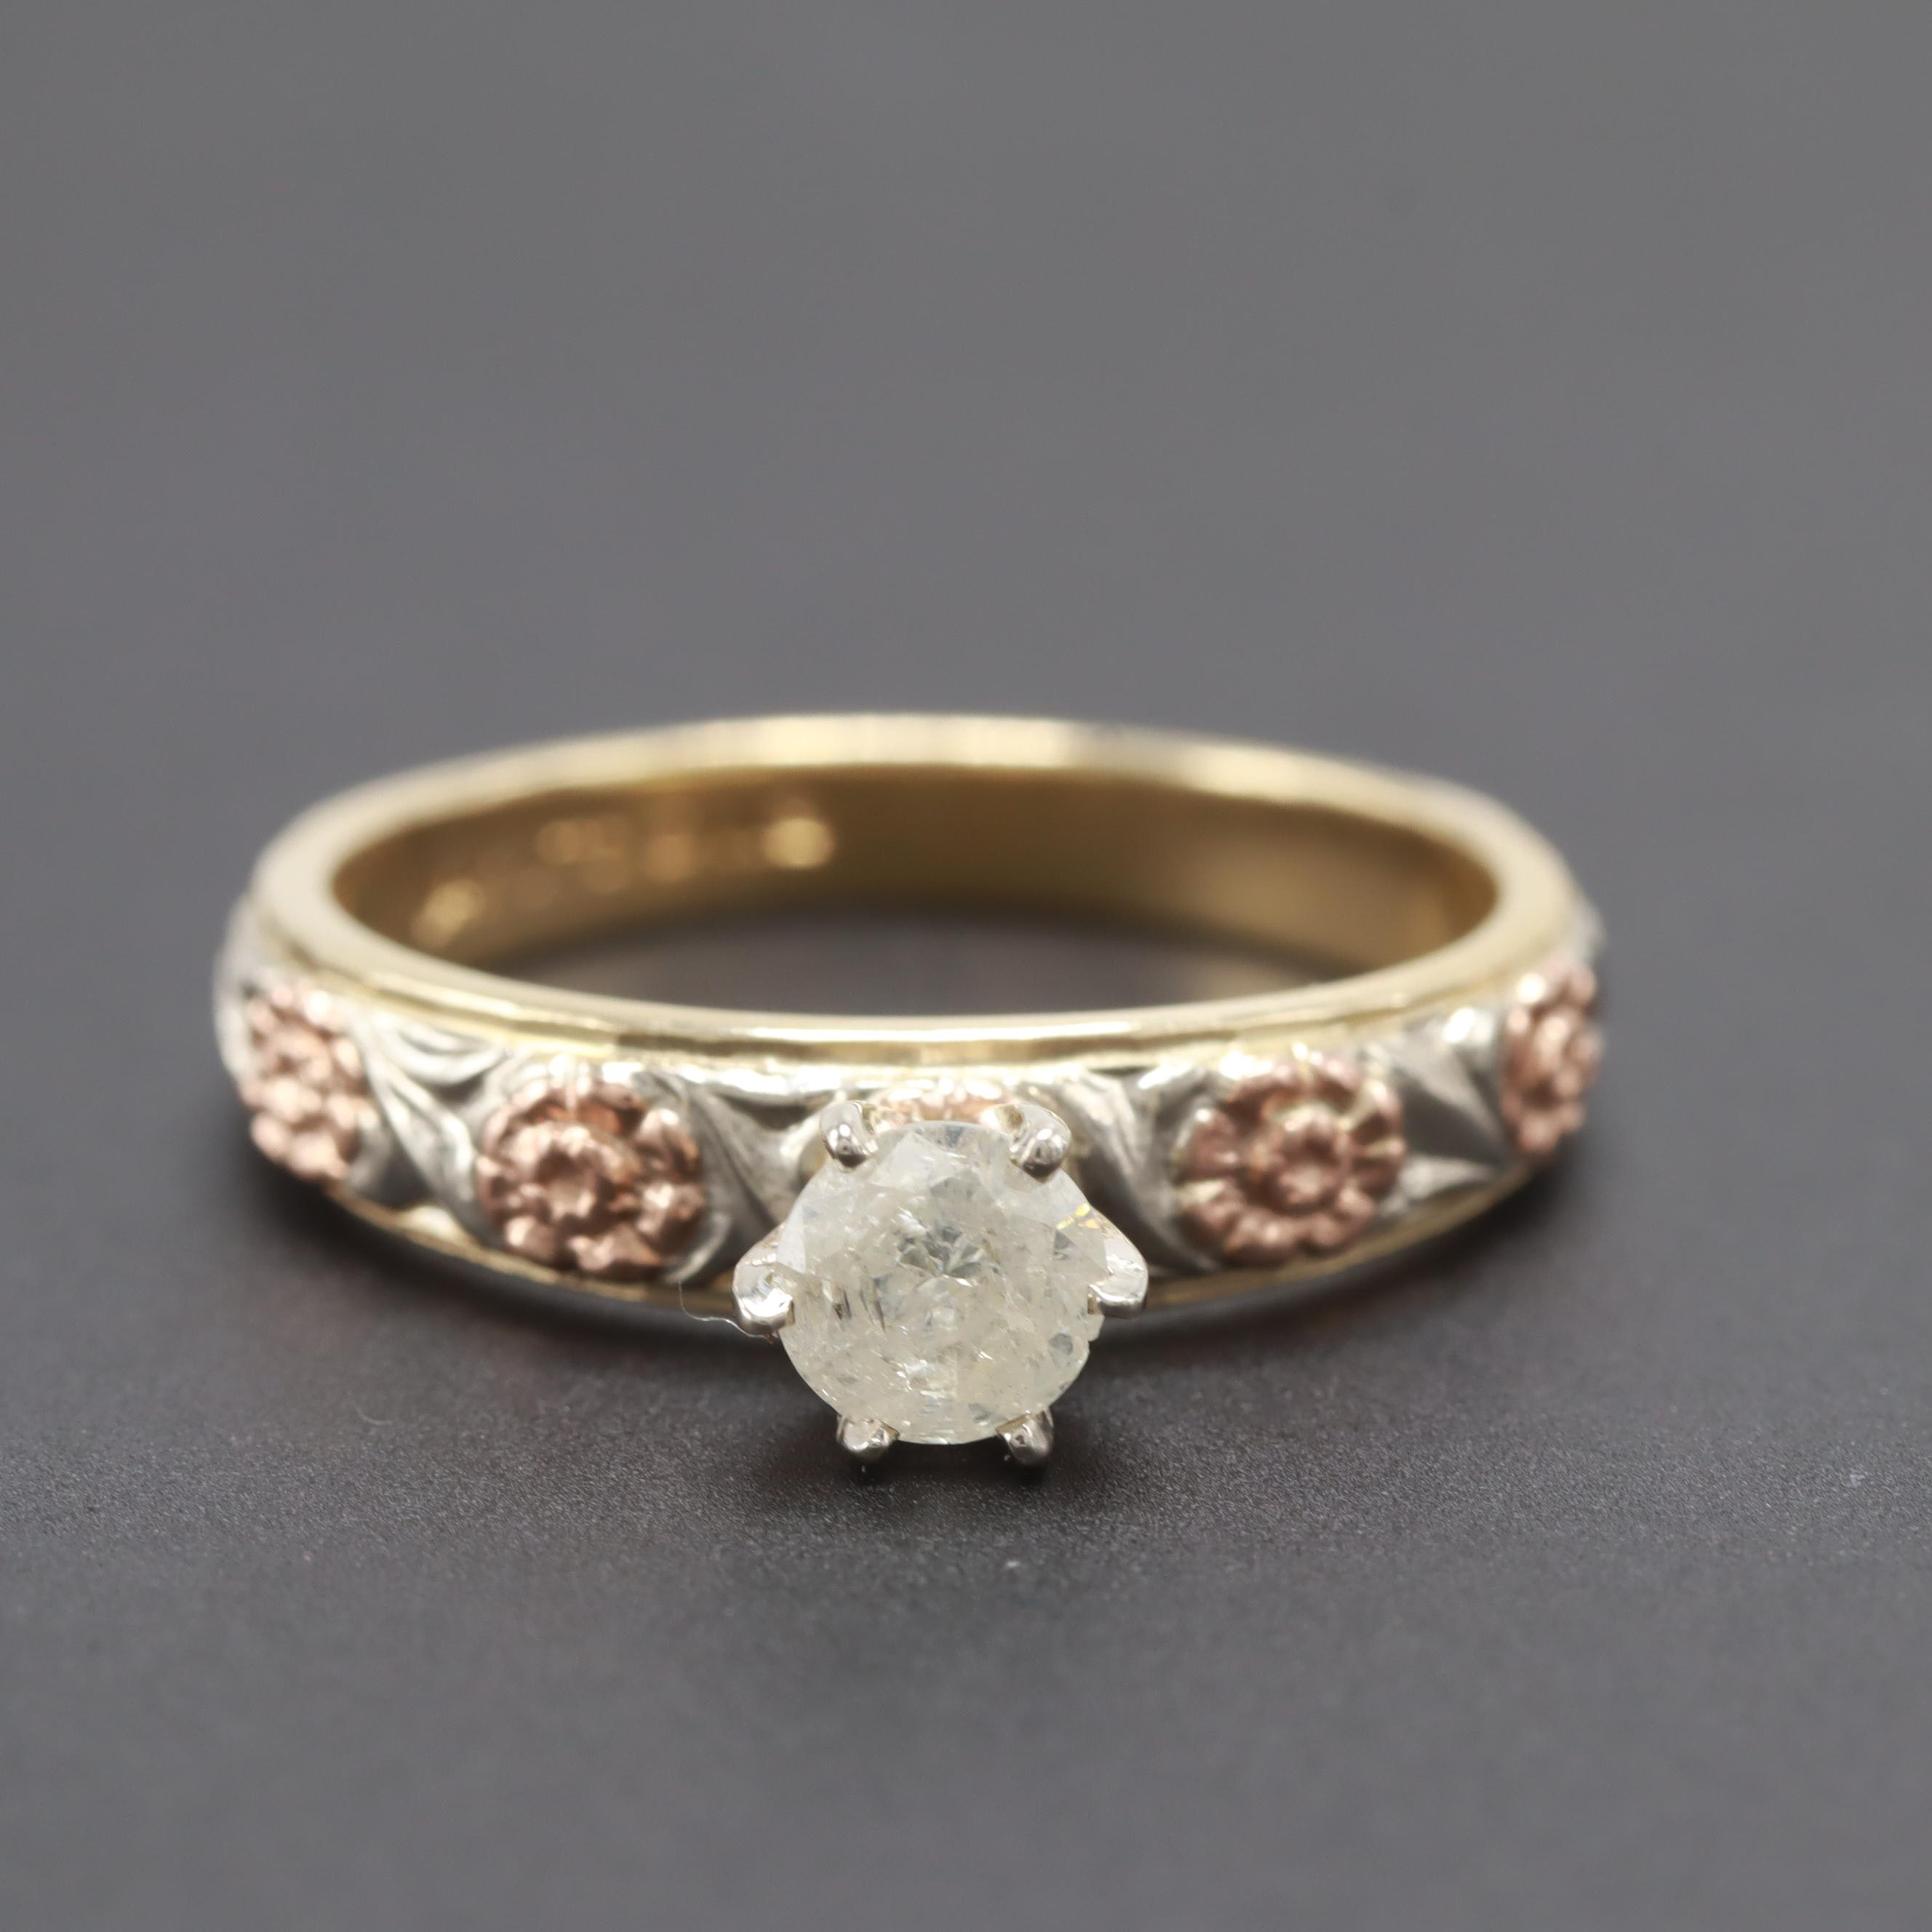 14K Yellow Gold Diamond Ring with Rose and White Gold Accents